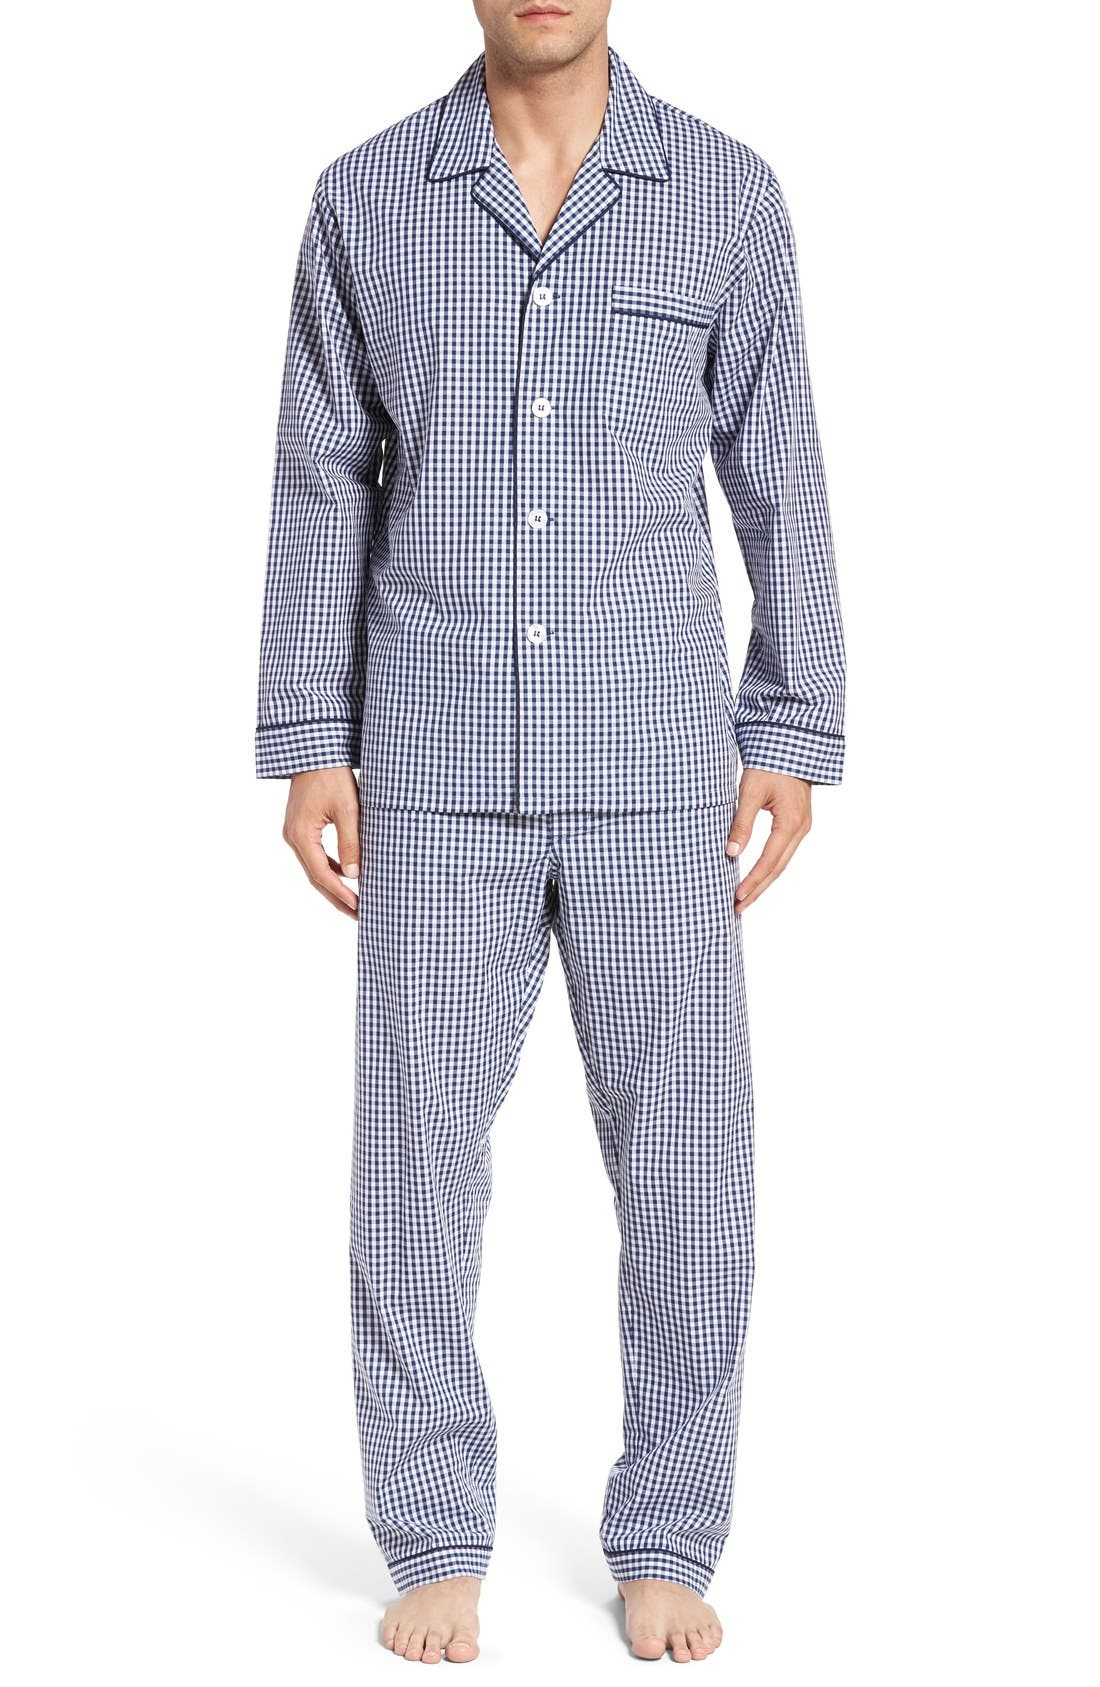 'Hot & Cold' Pajamas,                             Main thumbnail 1, color,                             400